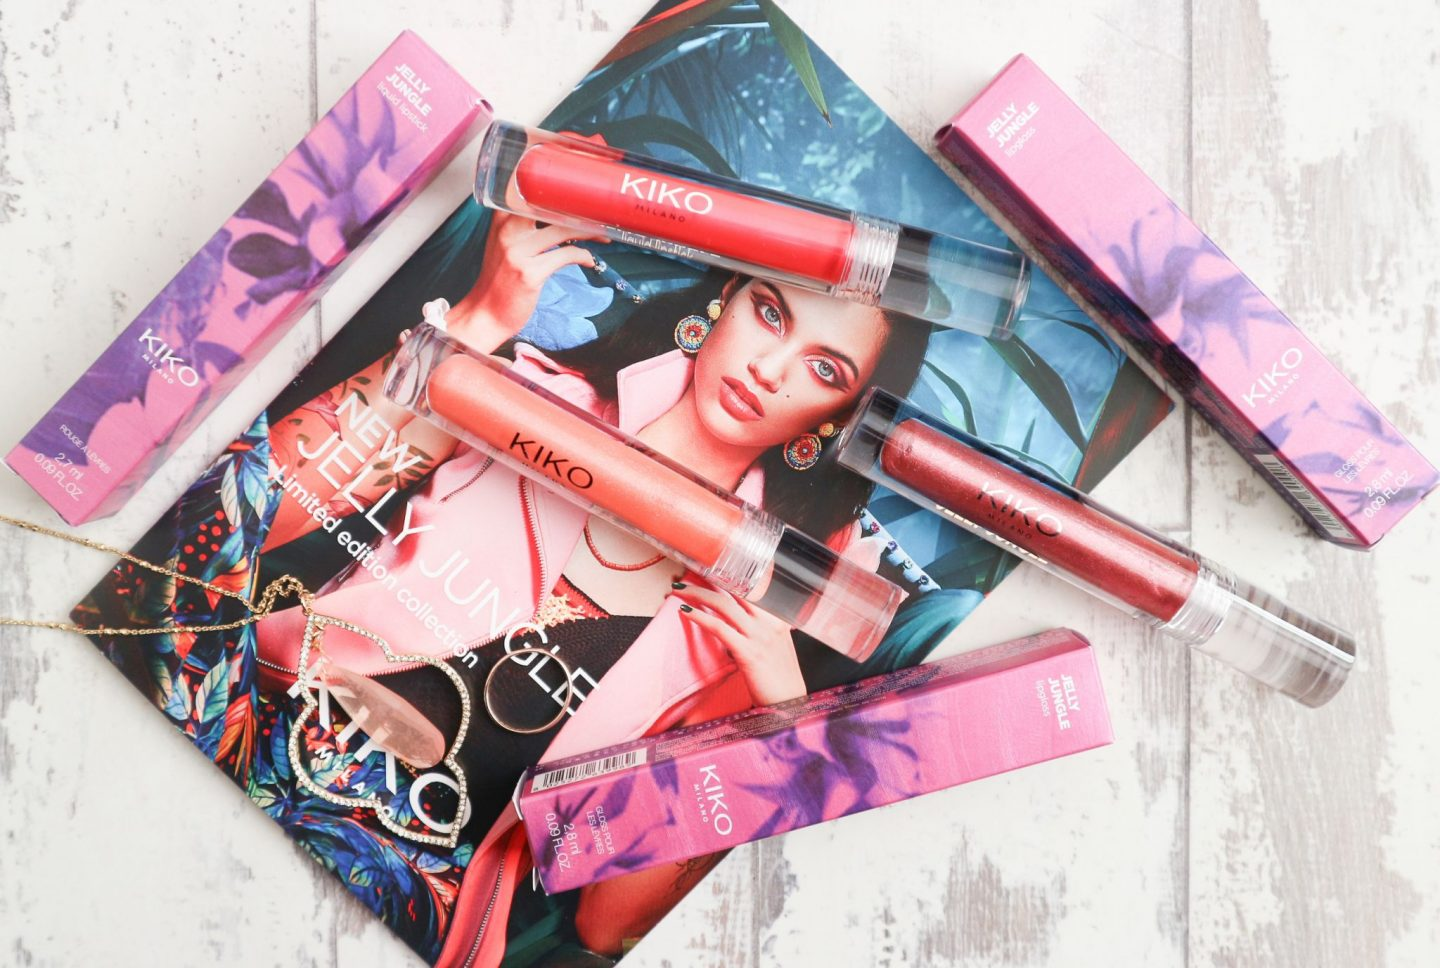 kiko jelly jungle lip gloss